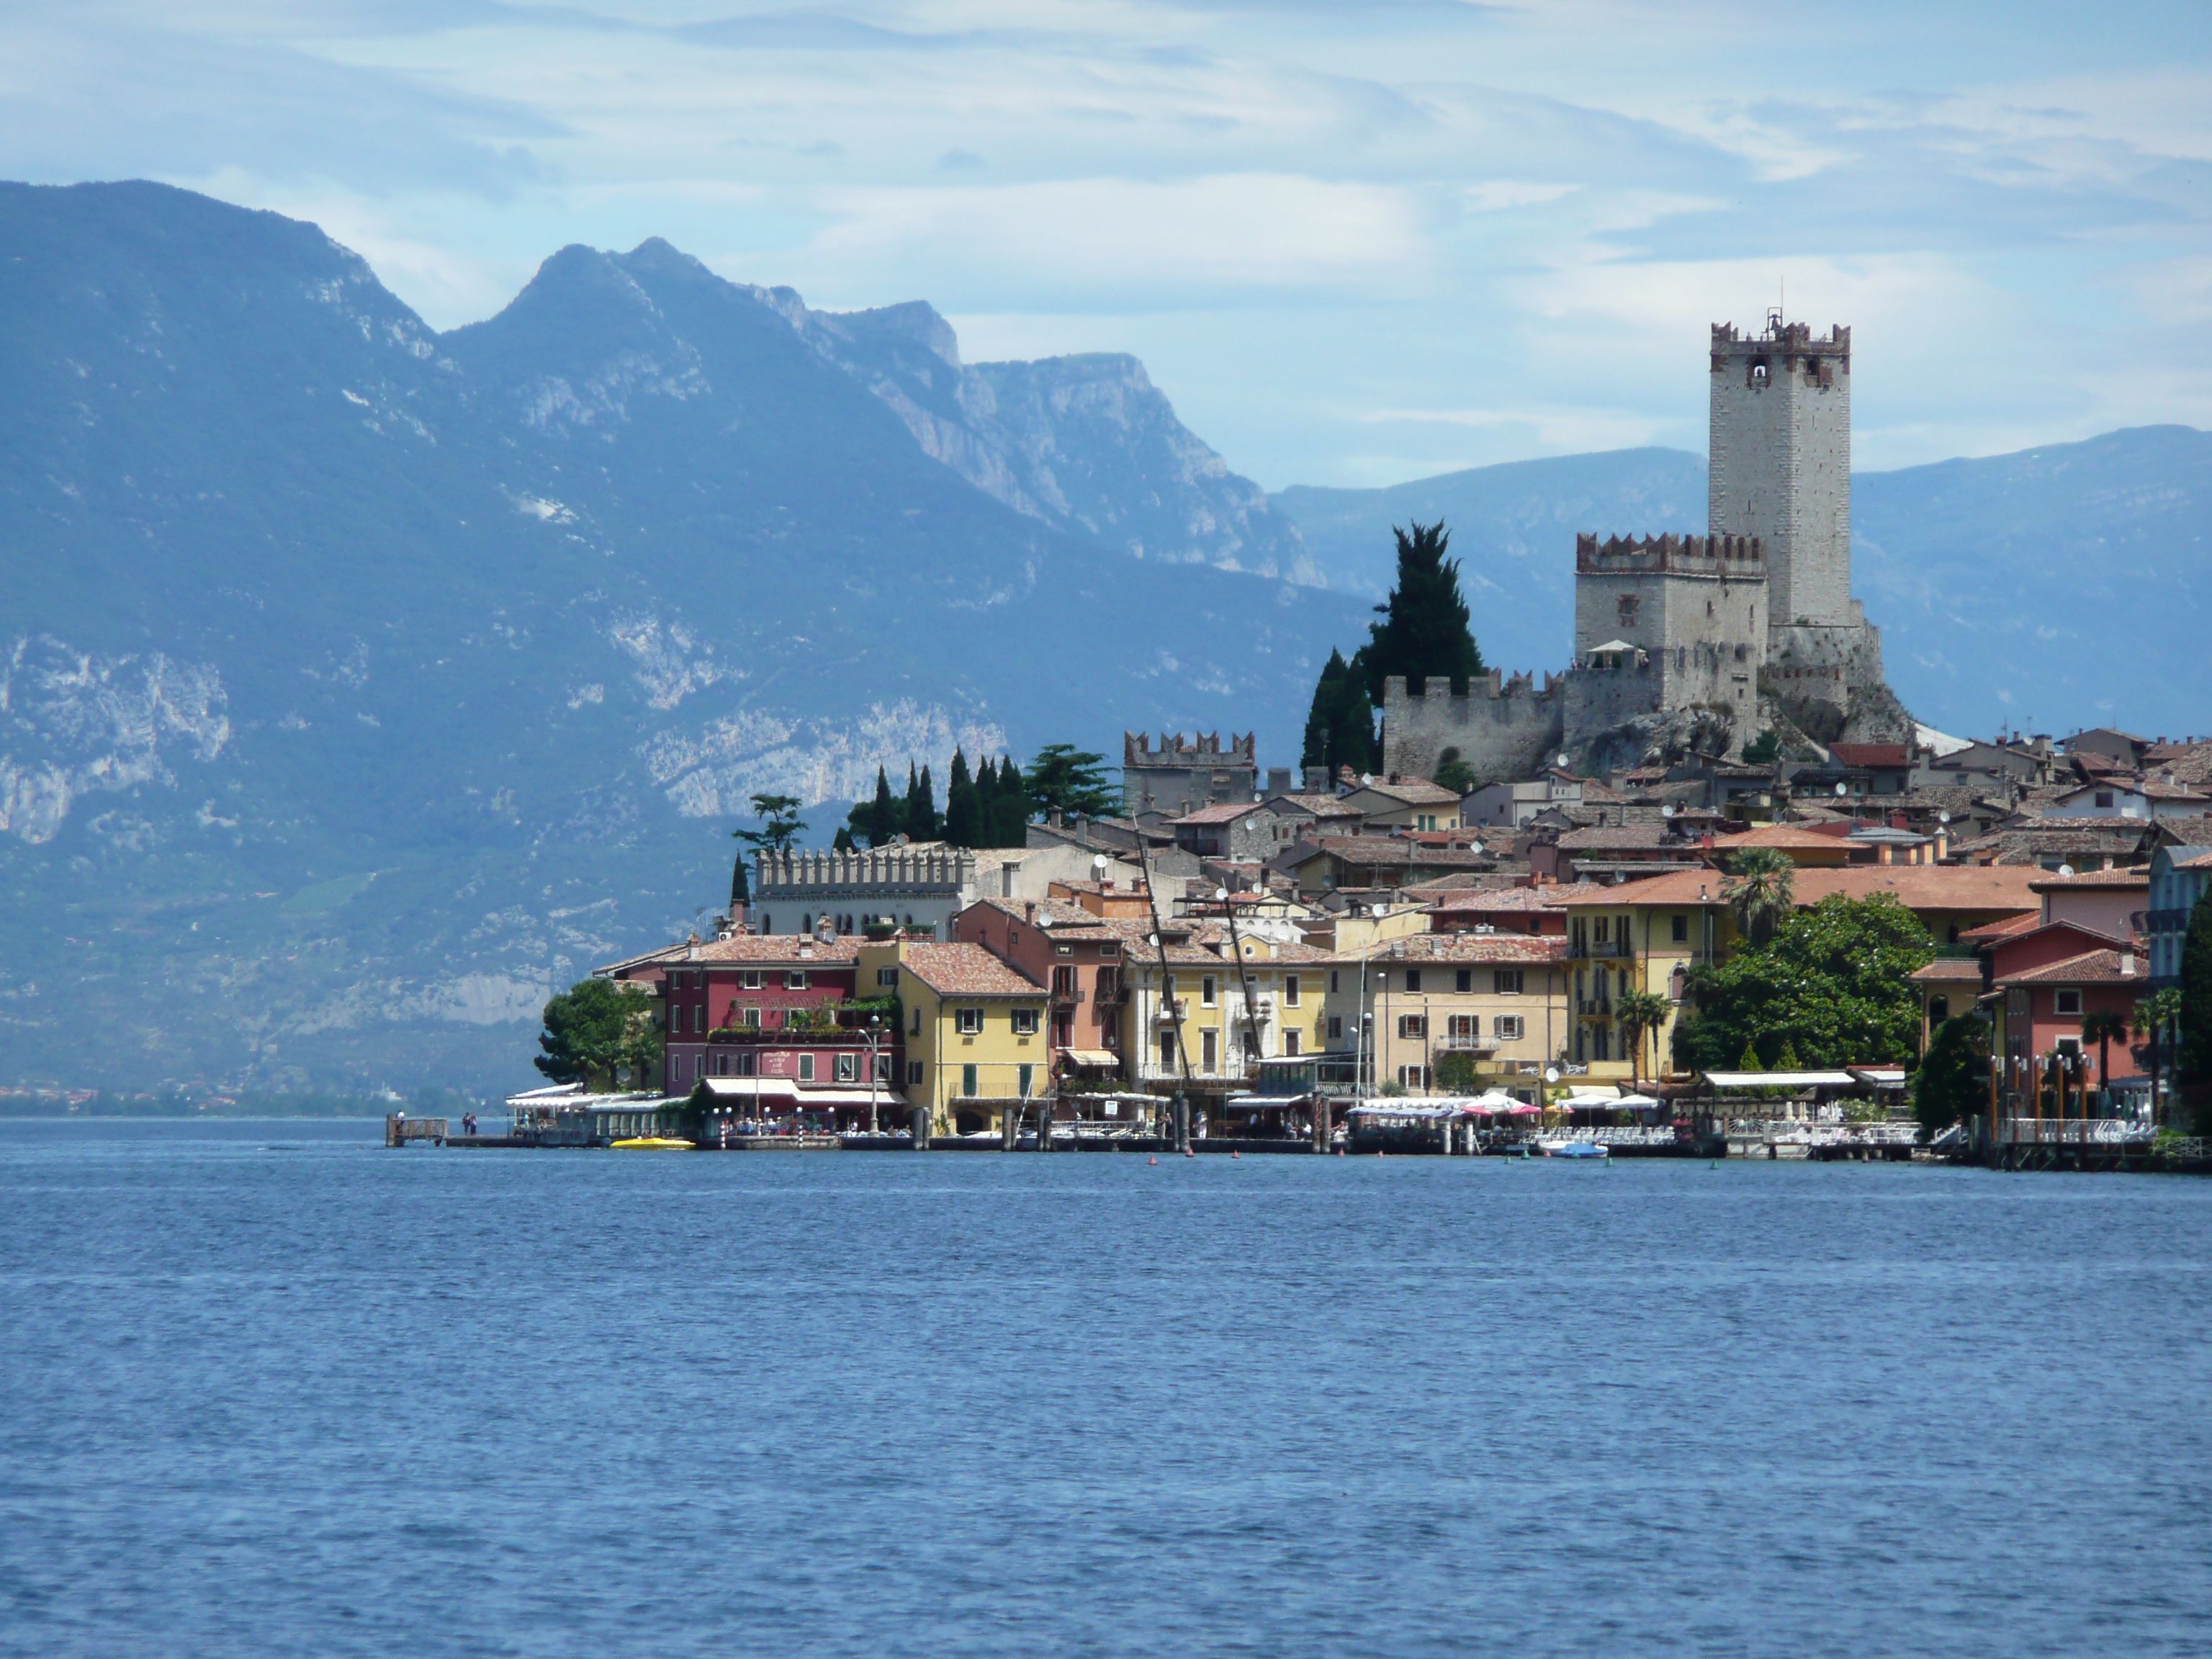 org/wikipedia/commons/f/f2/View_malcesine_lake_garda_veneto_italy